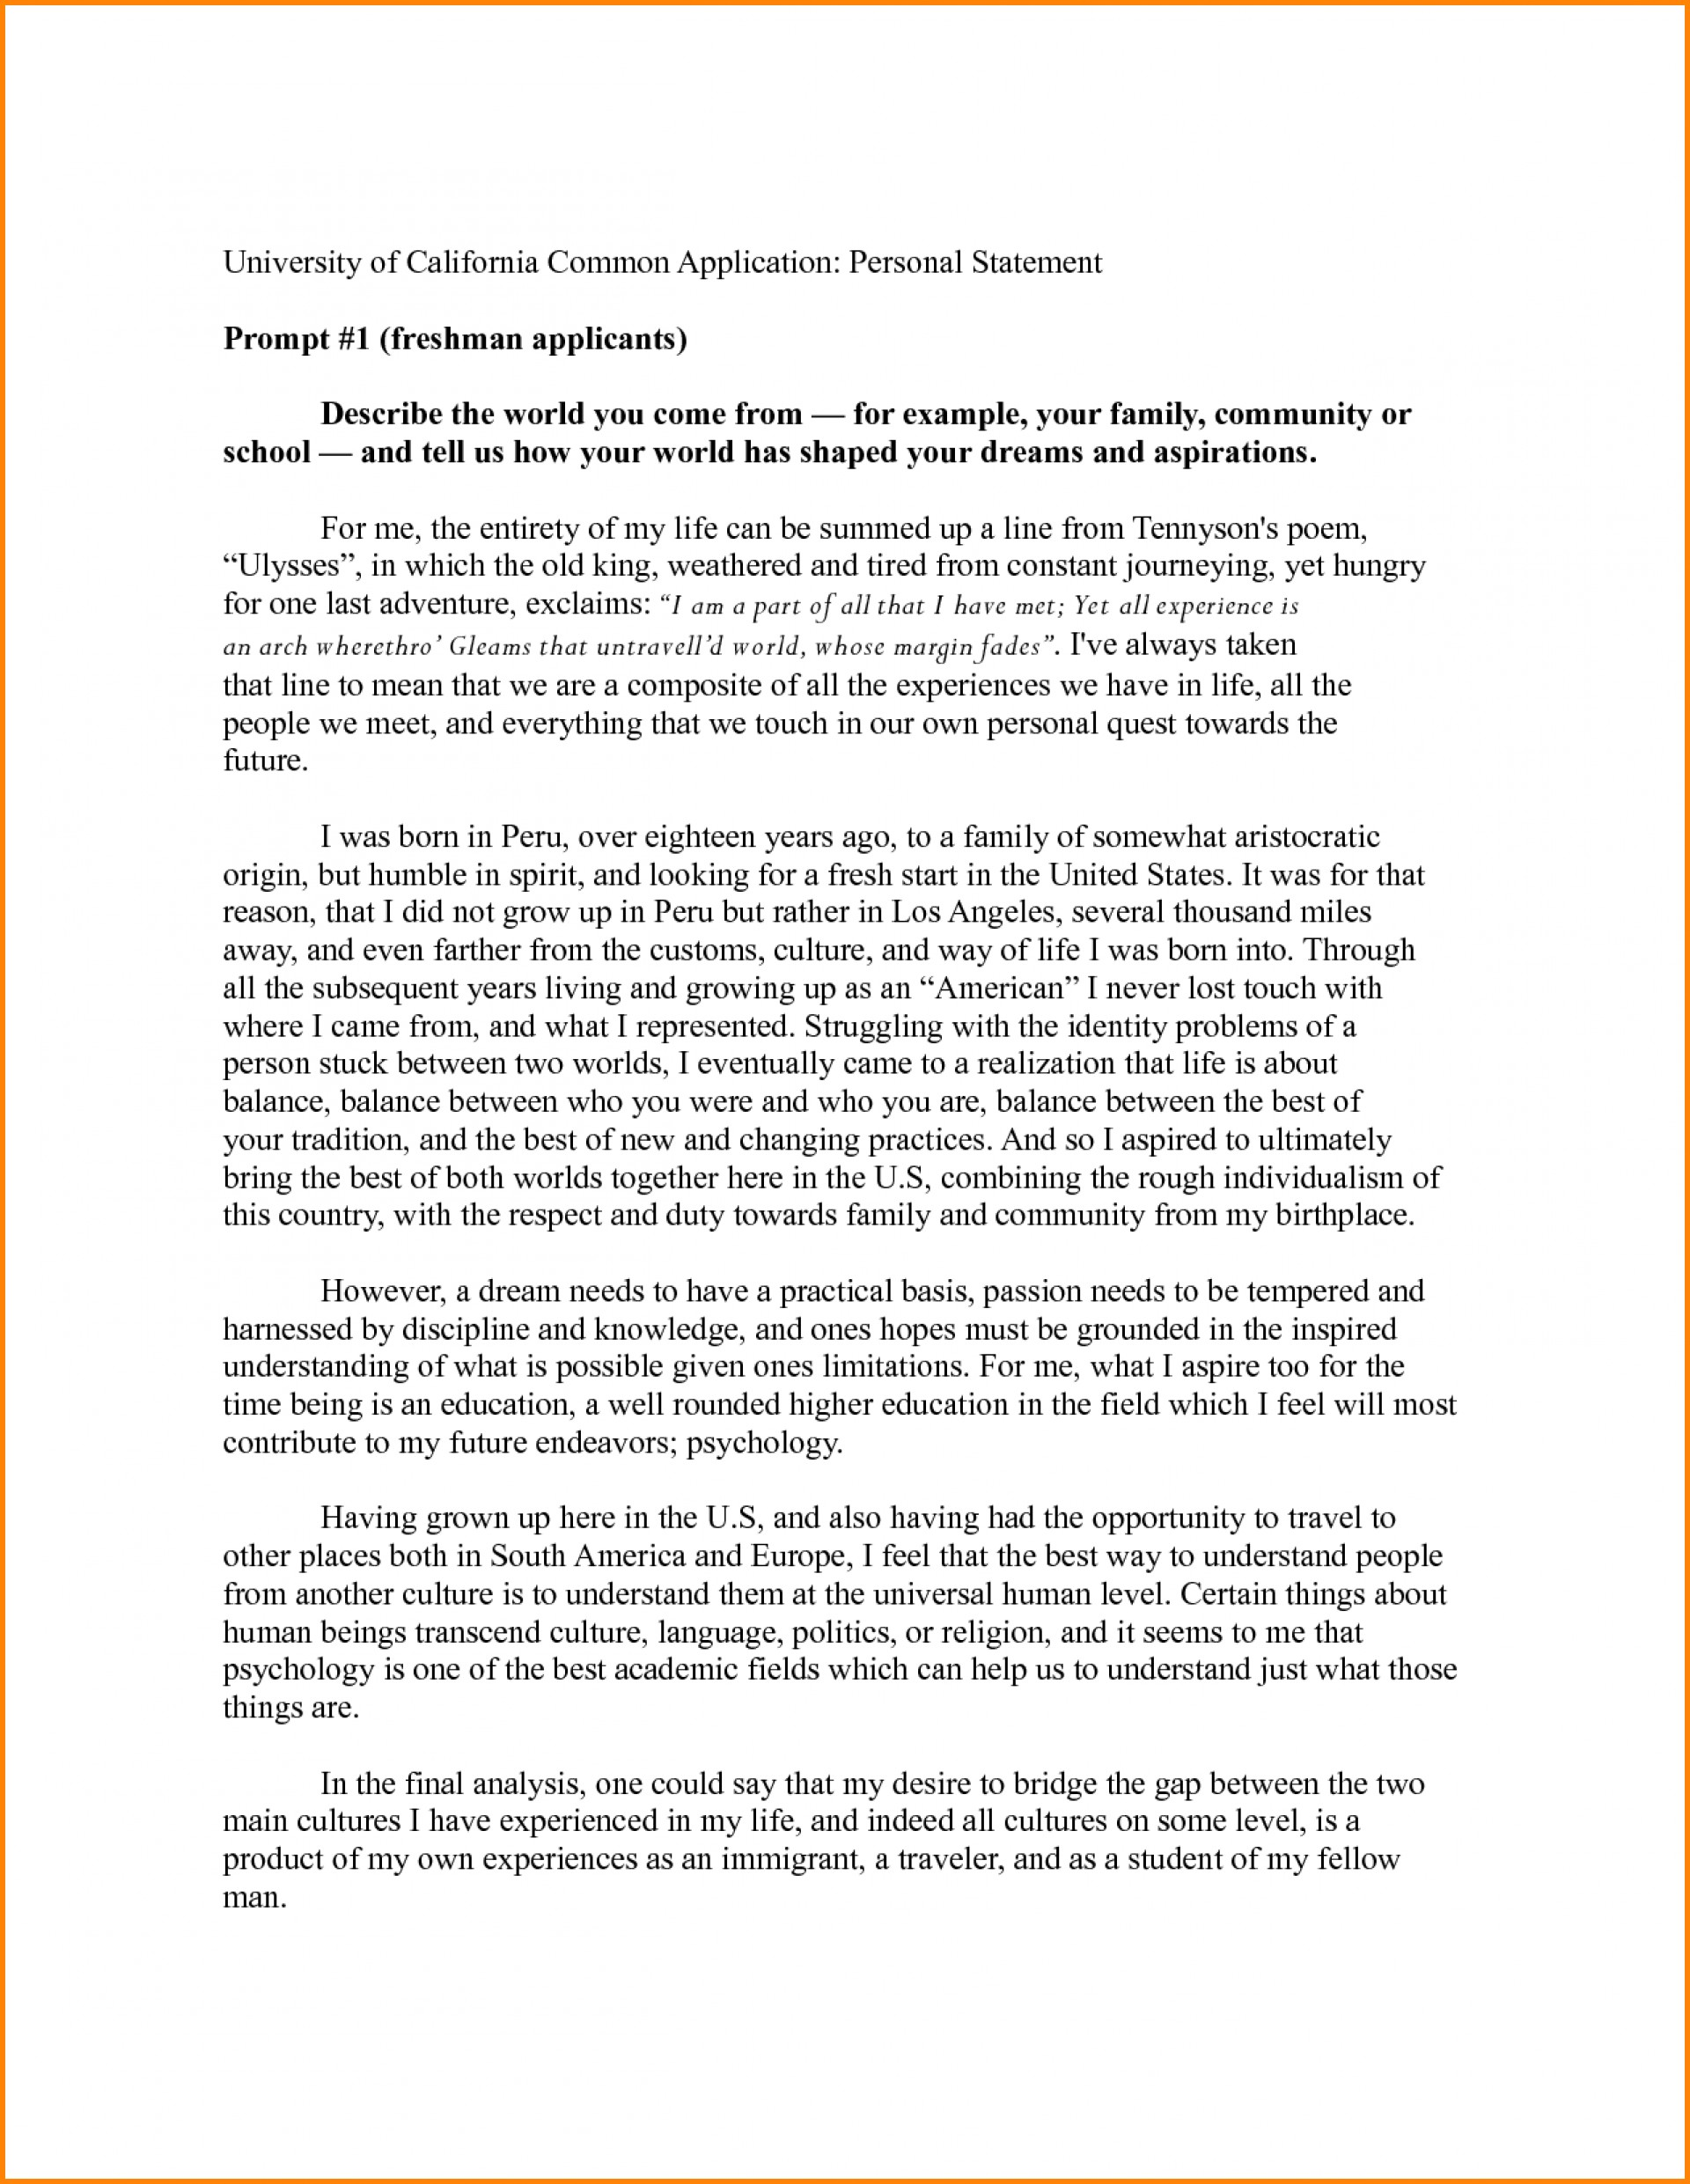 008 Brilliant Ideas Of College Entrance Essay Format Mon Application Personal Easy Prompts Texas Example Archaicawful Apply Topics Prompt C Topic Examples A 1920